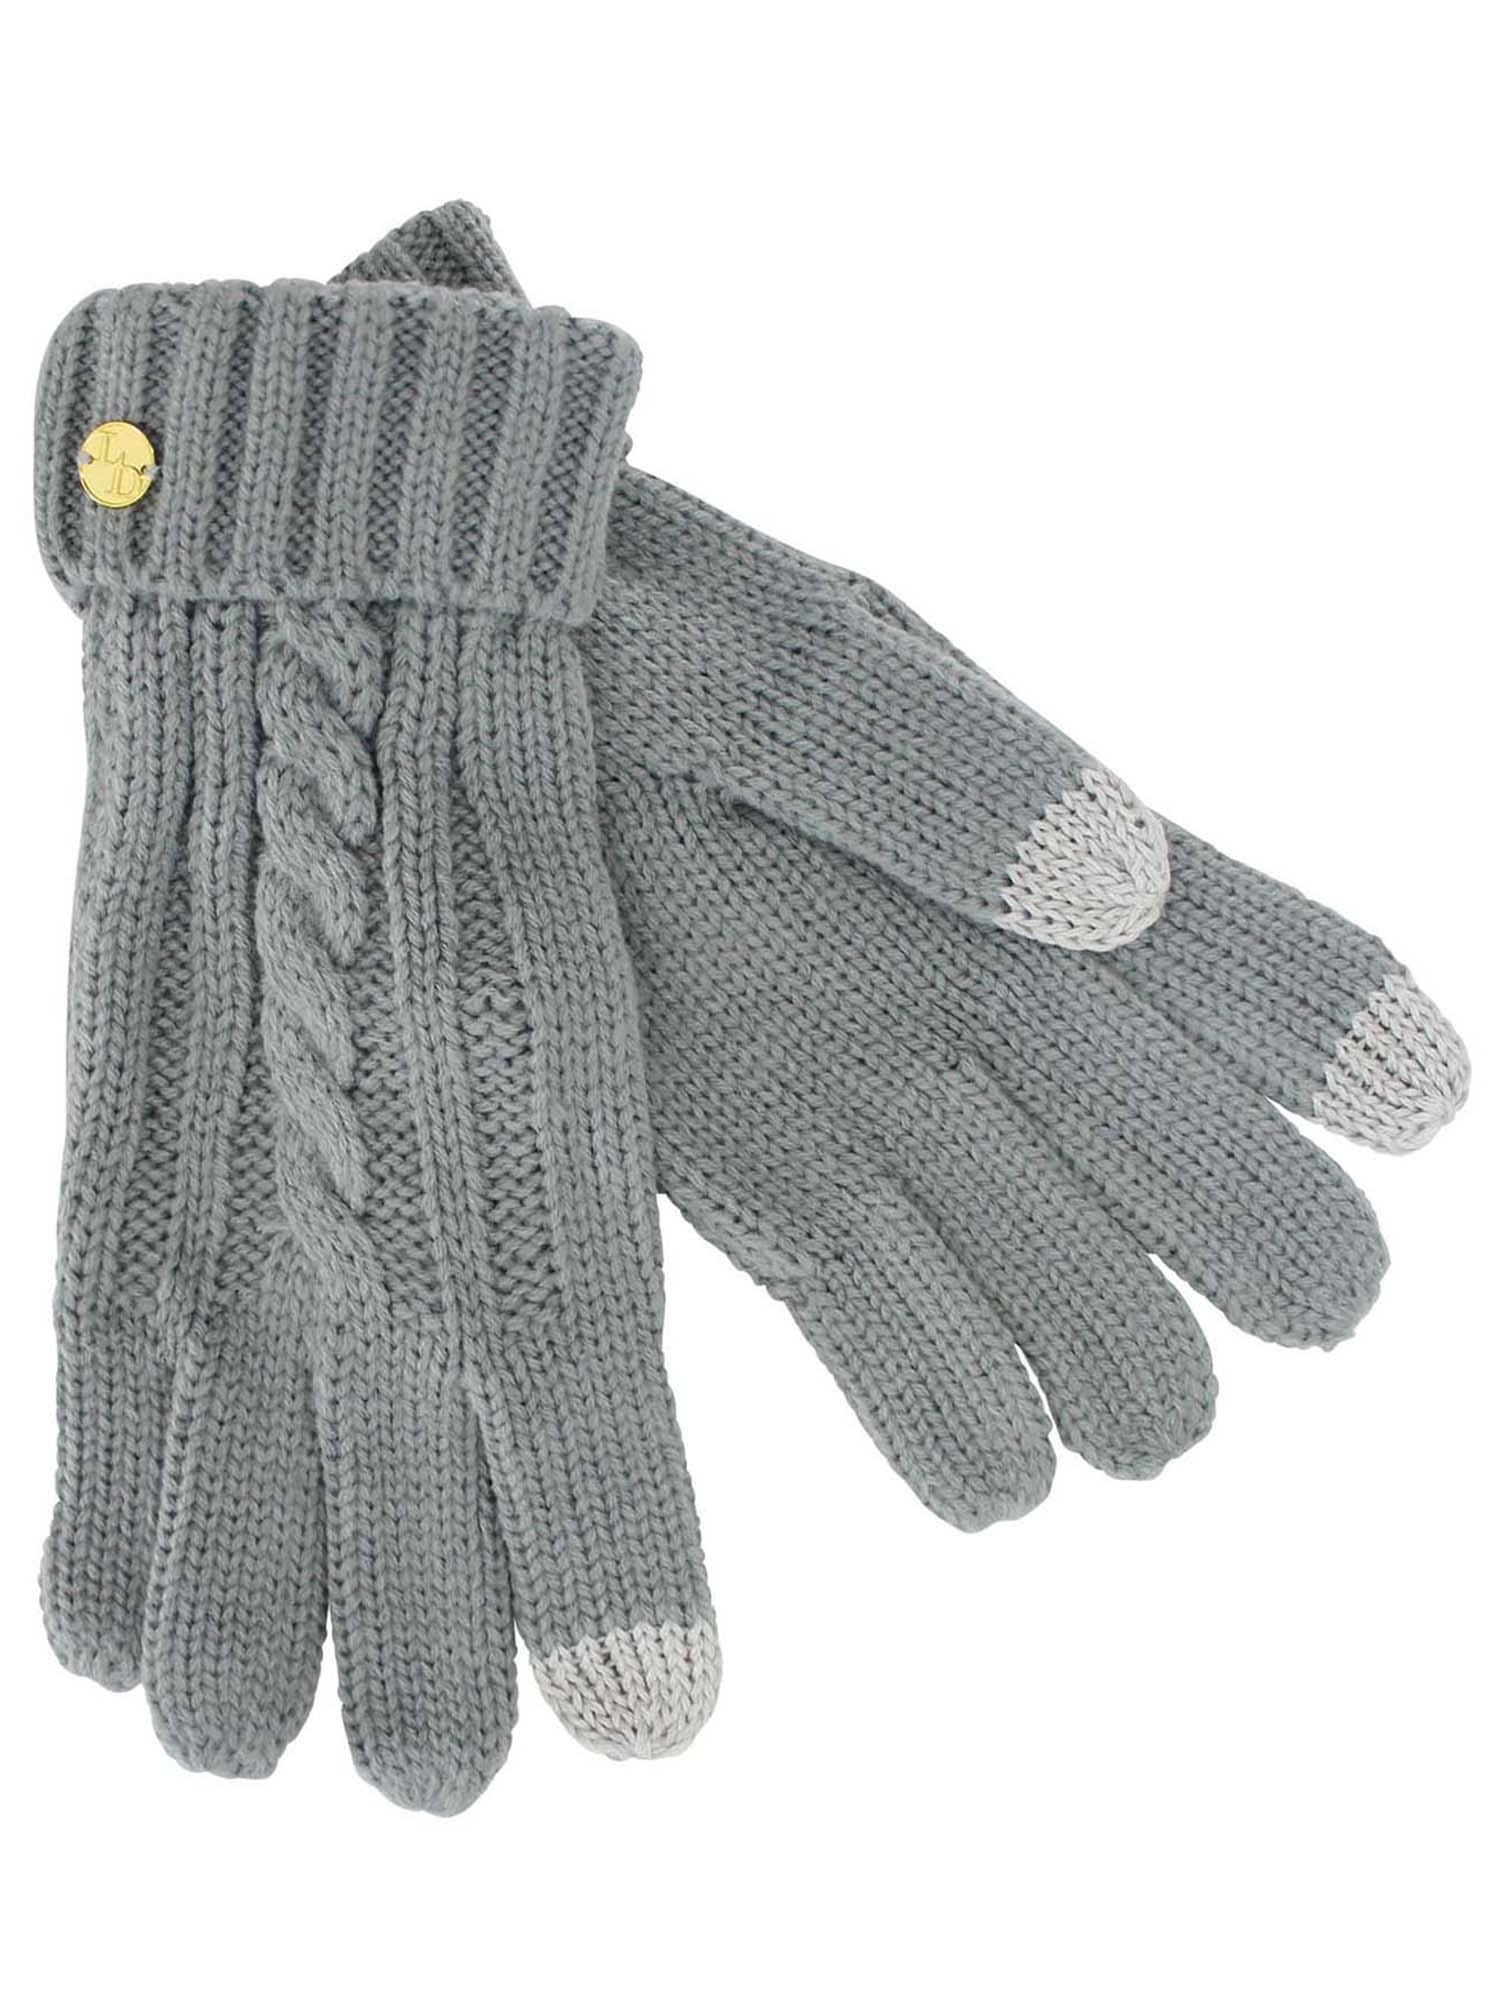 d64eab5bbfb CABLE KNIT 3 PIECE BEANIE HAT TEXTING GLOVES   MATCHING SCARF SET